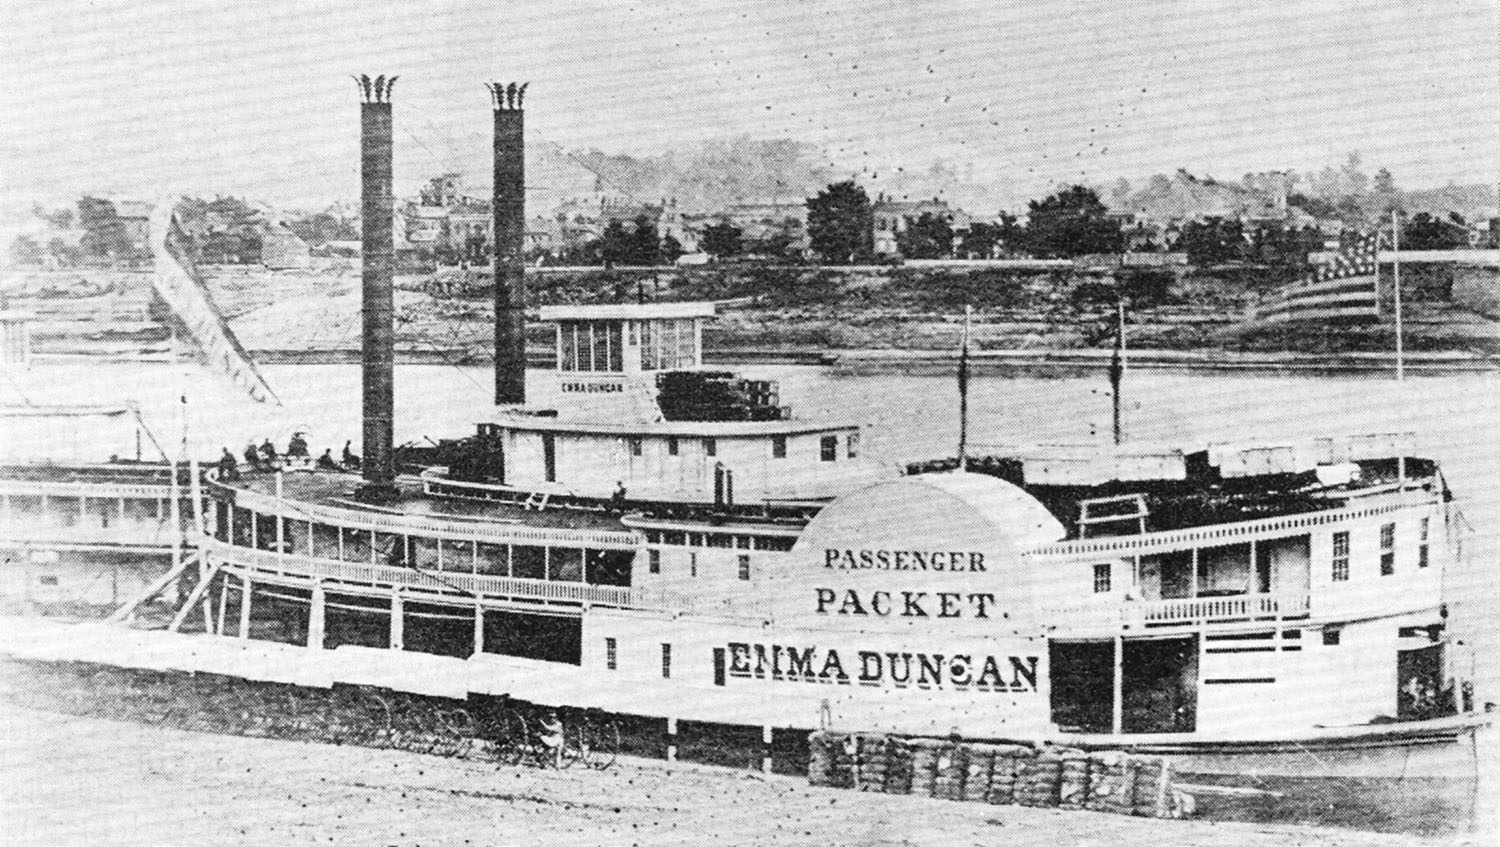 The Emma Duncan at the wharf. (Keith Norrington collection)